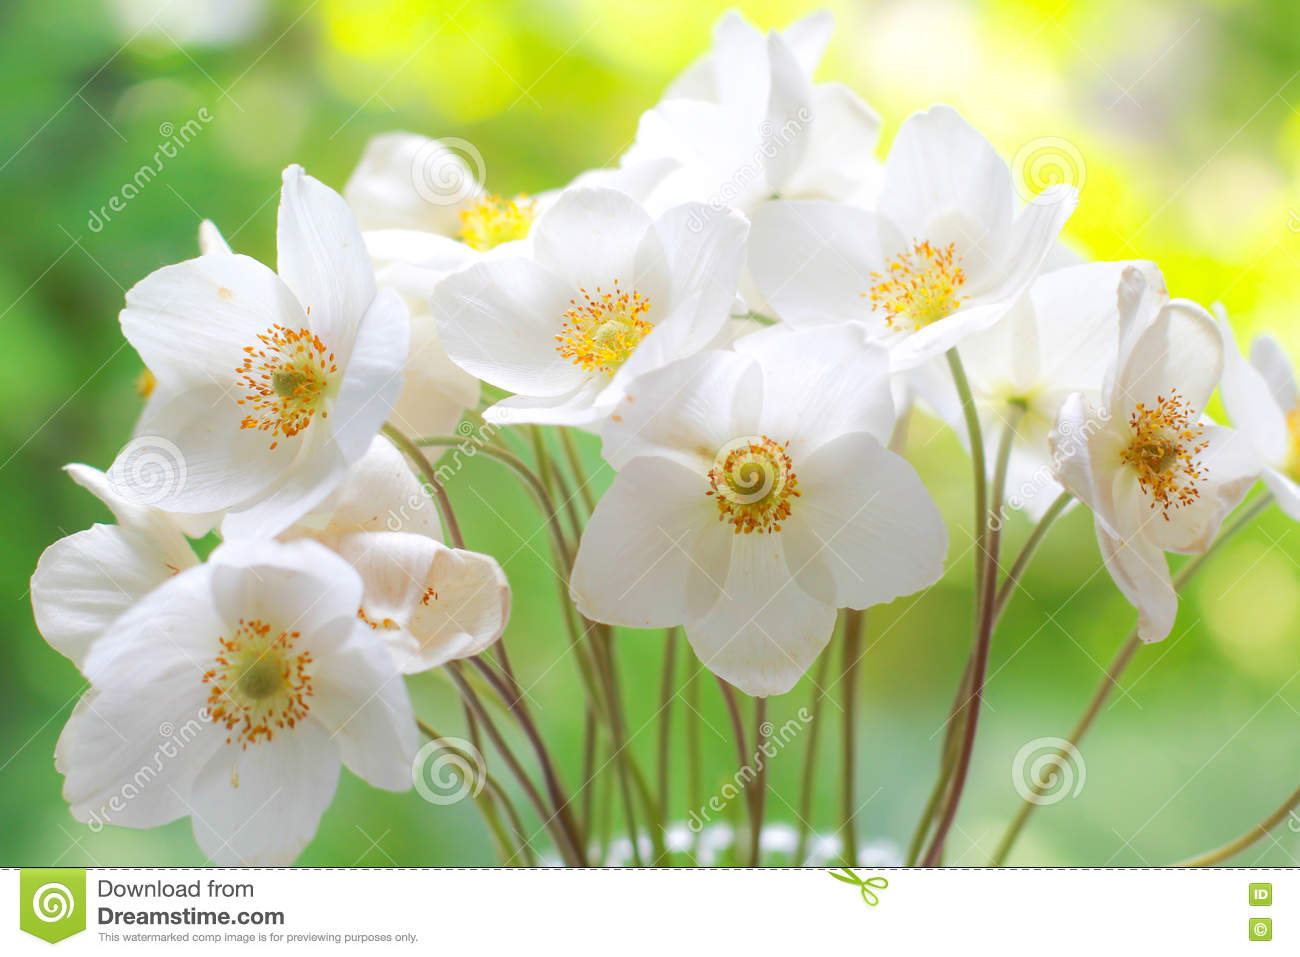 Bouquet of white wildflowers. Fresh flowers. Special occasions. Greeting cards, celebration, anniversary.